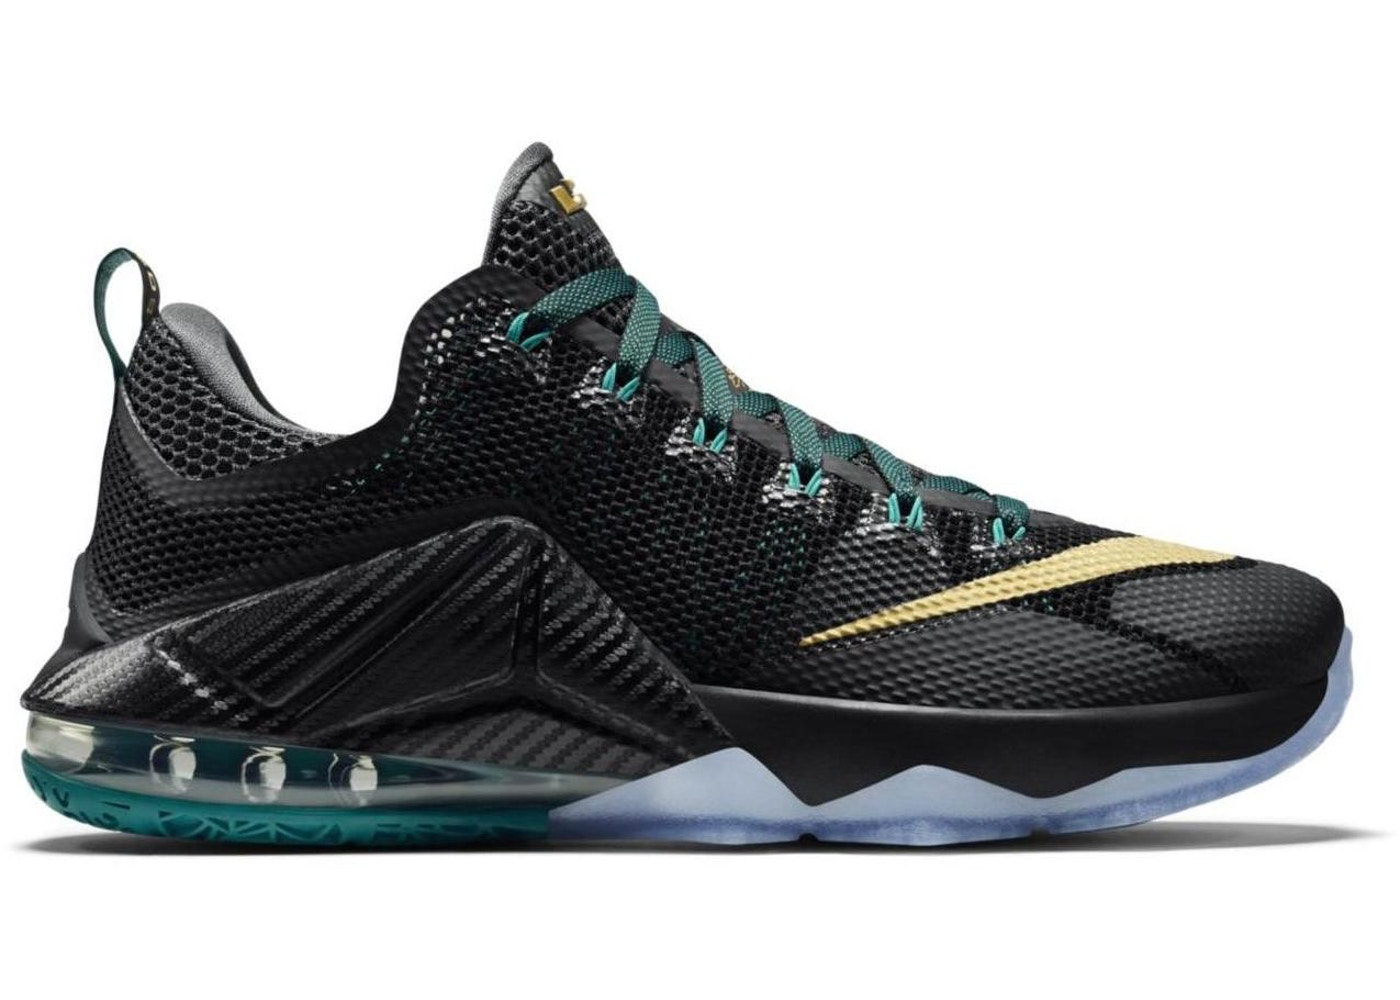 3750c91c278 LeBron 12 Low SVSM - 724557-070